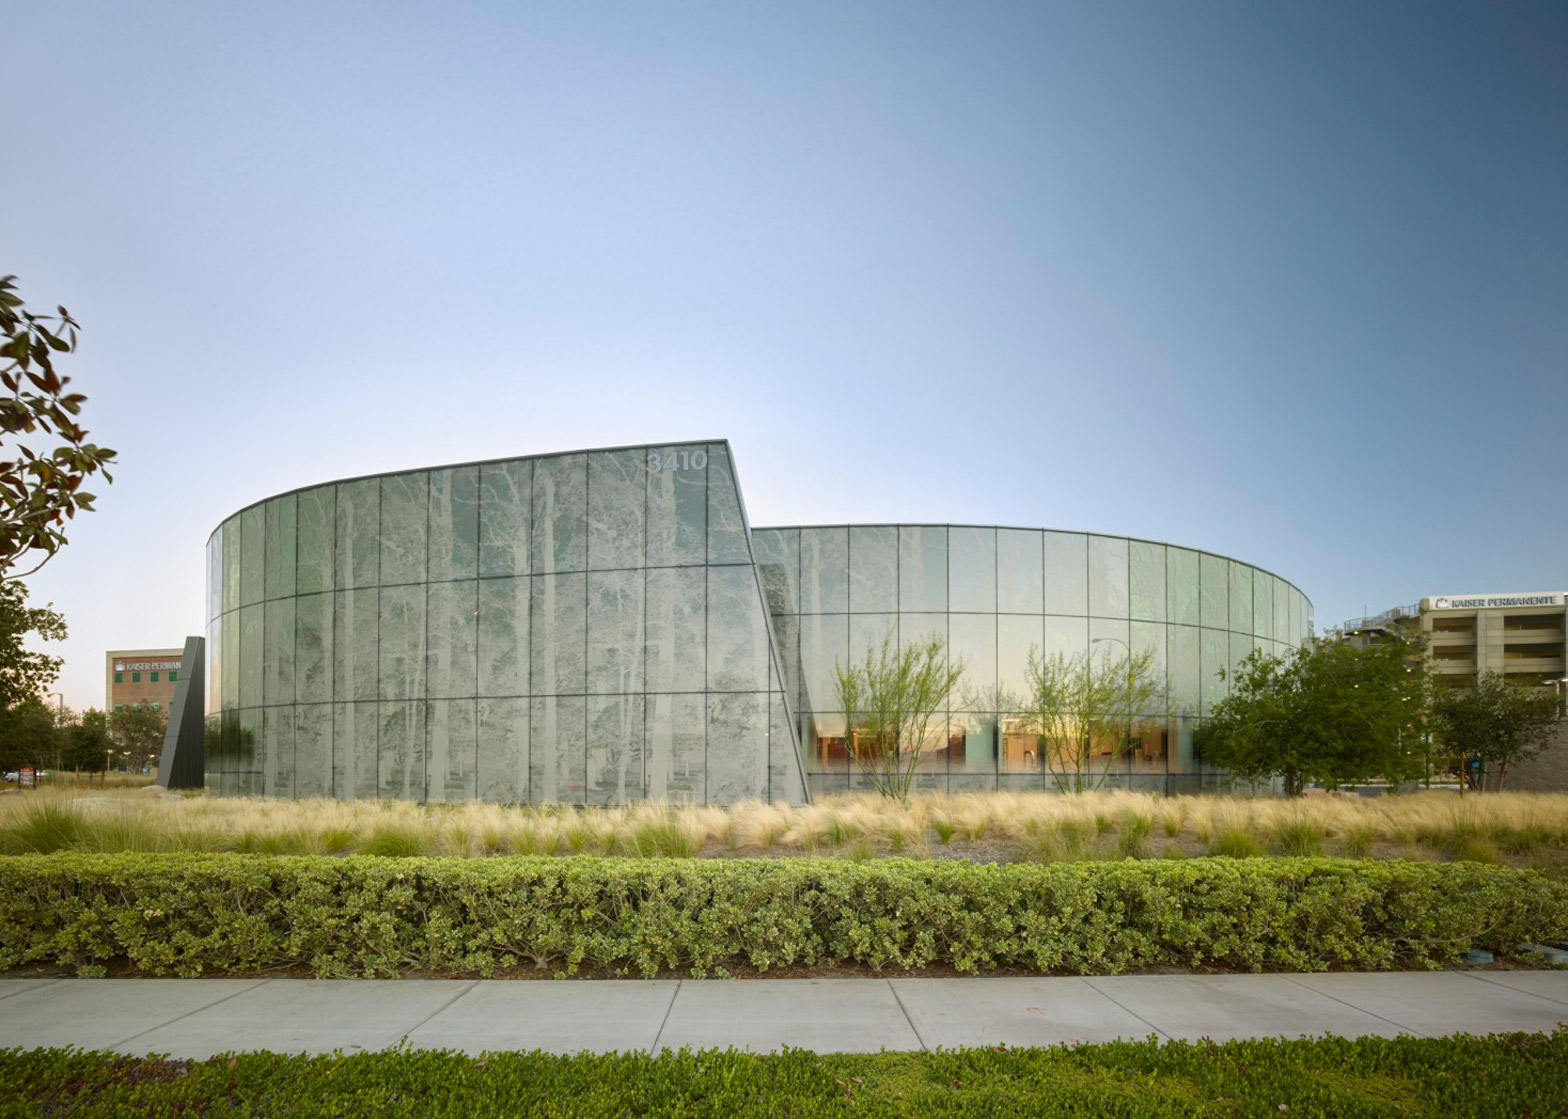 Kraemer Radiation Oncology Center by Yazdani Studio